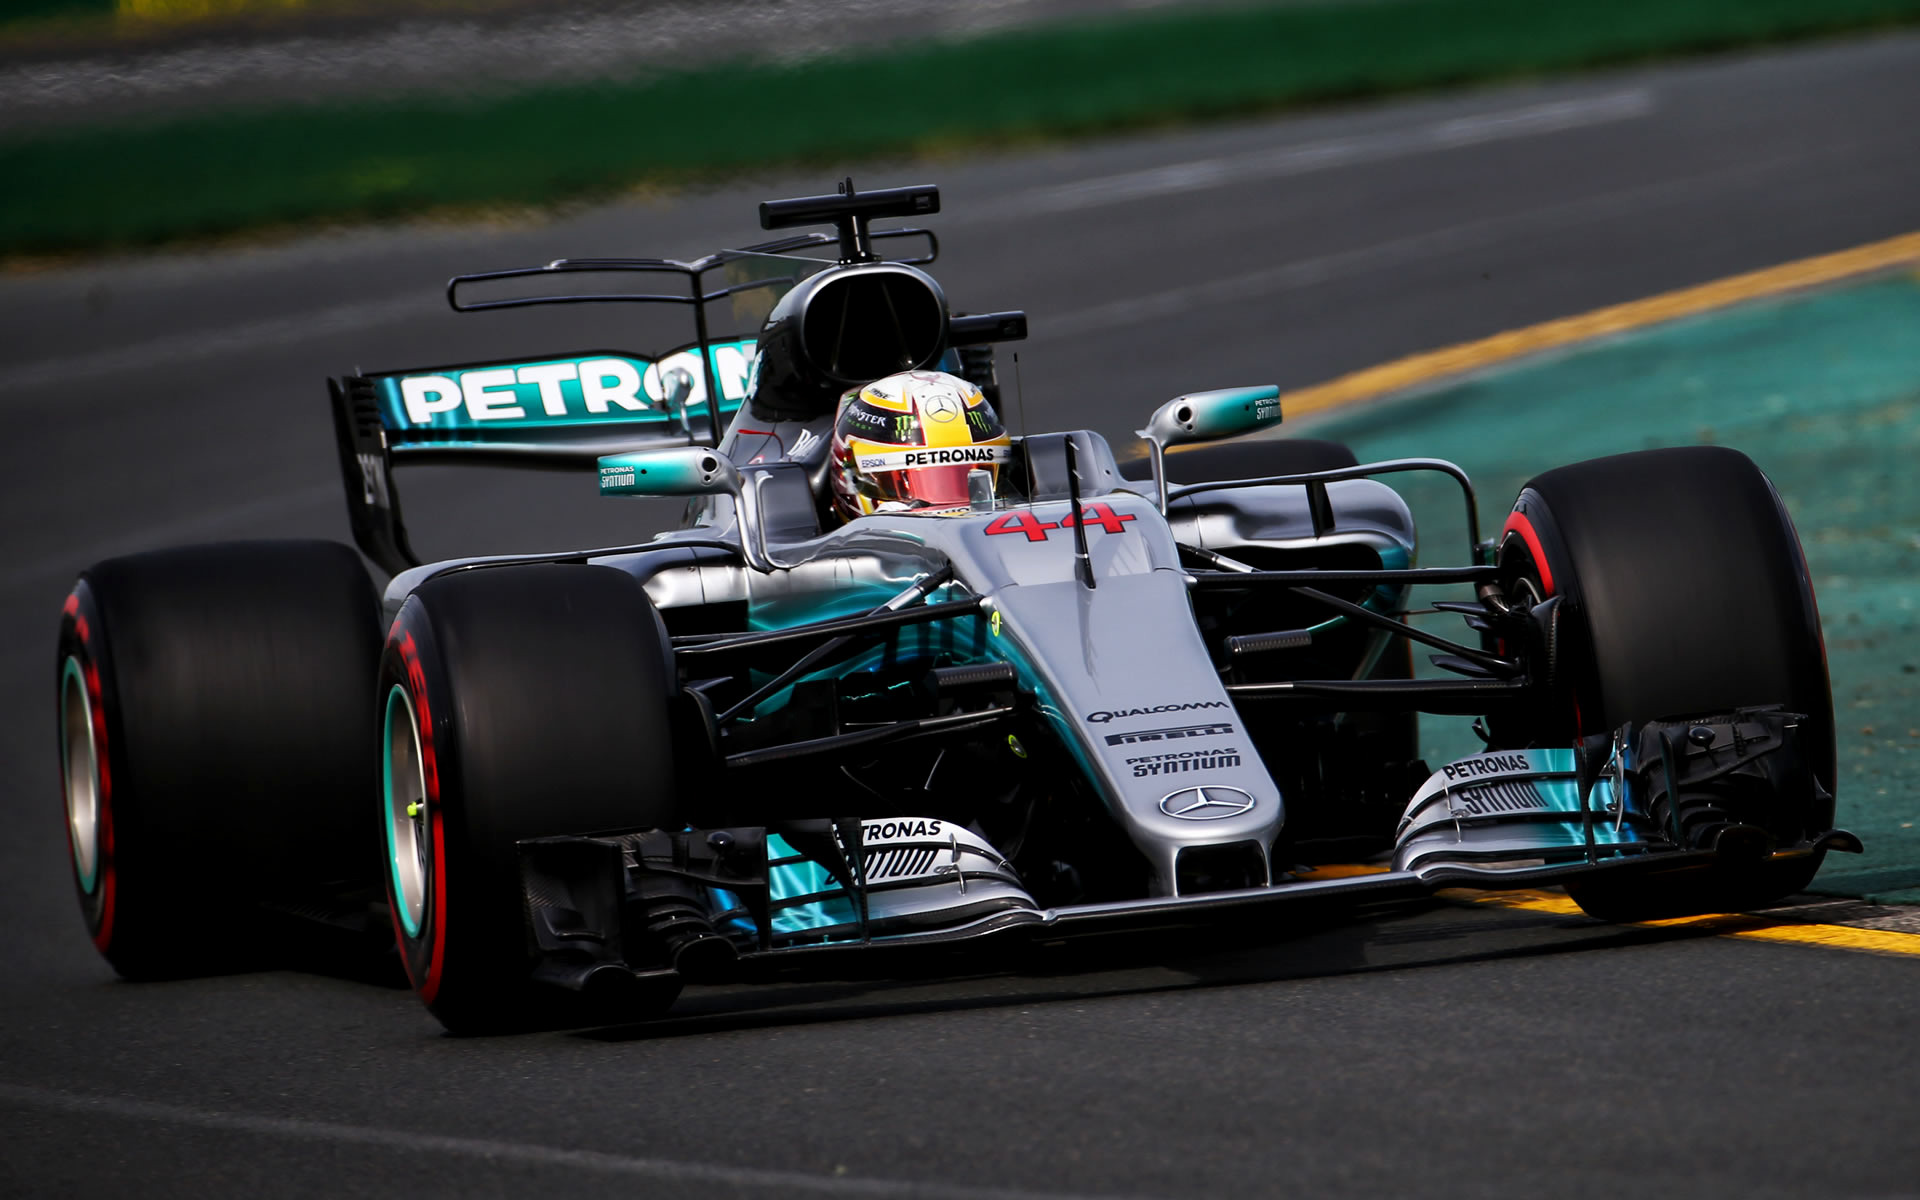 Mercedes F1 Wallpapers Posted By Ryan Thompson Images, Photos, Reviews